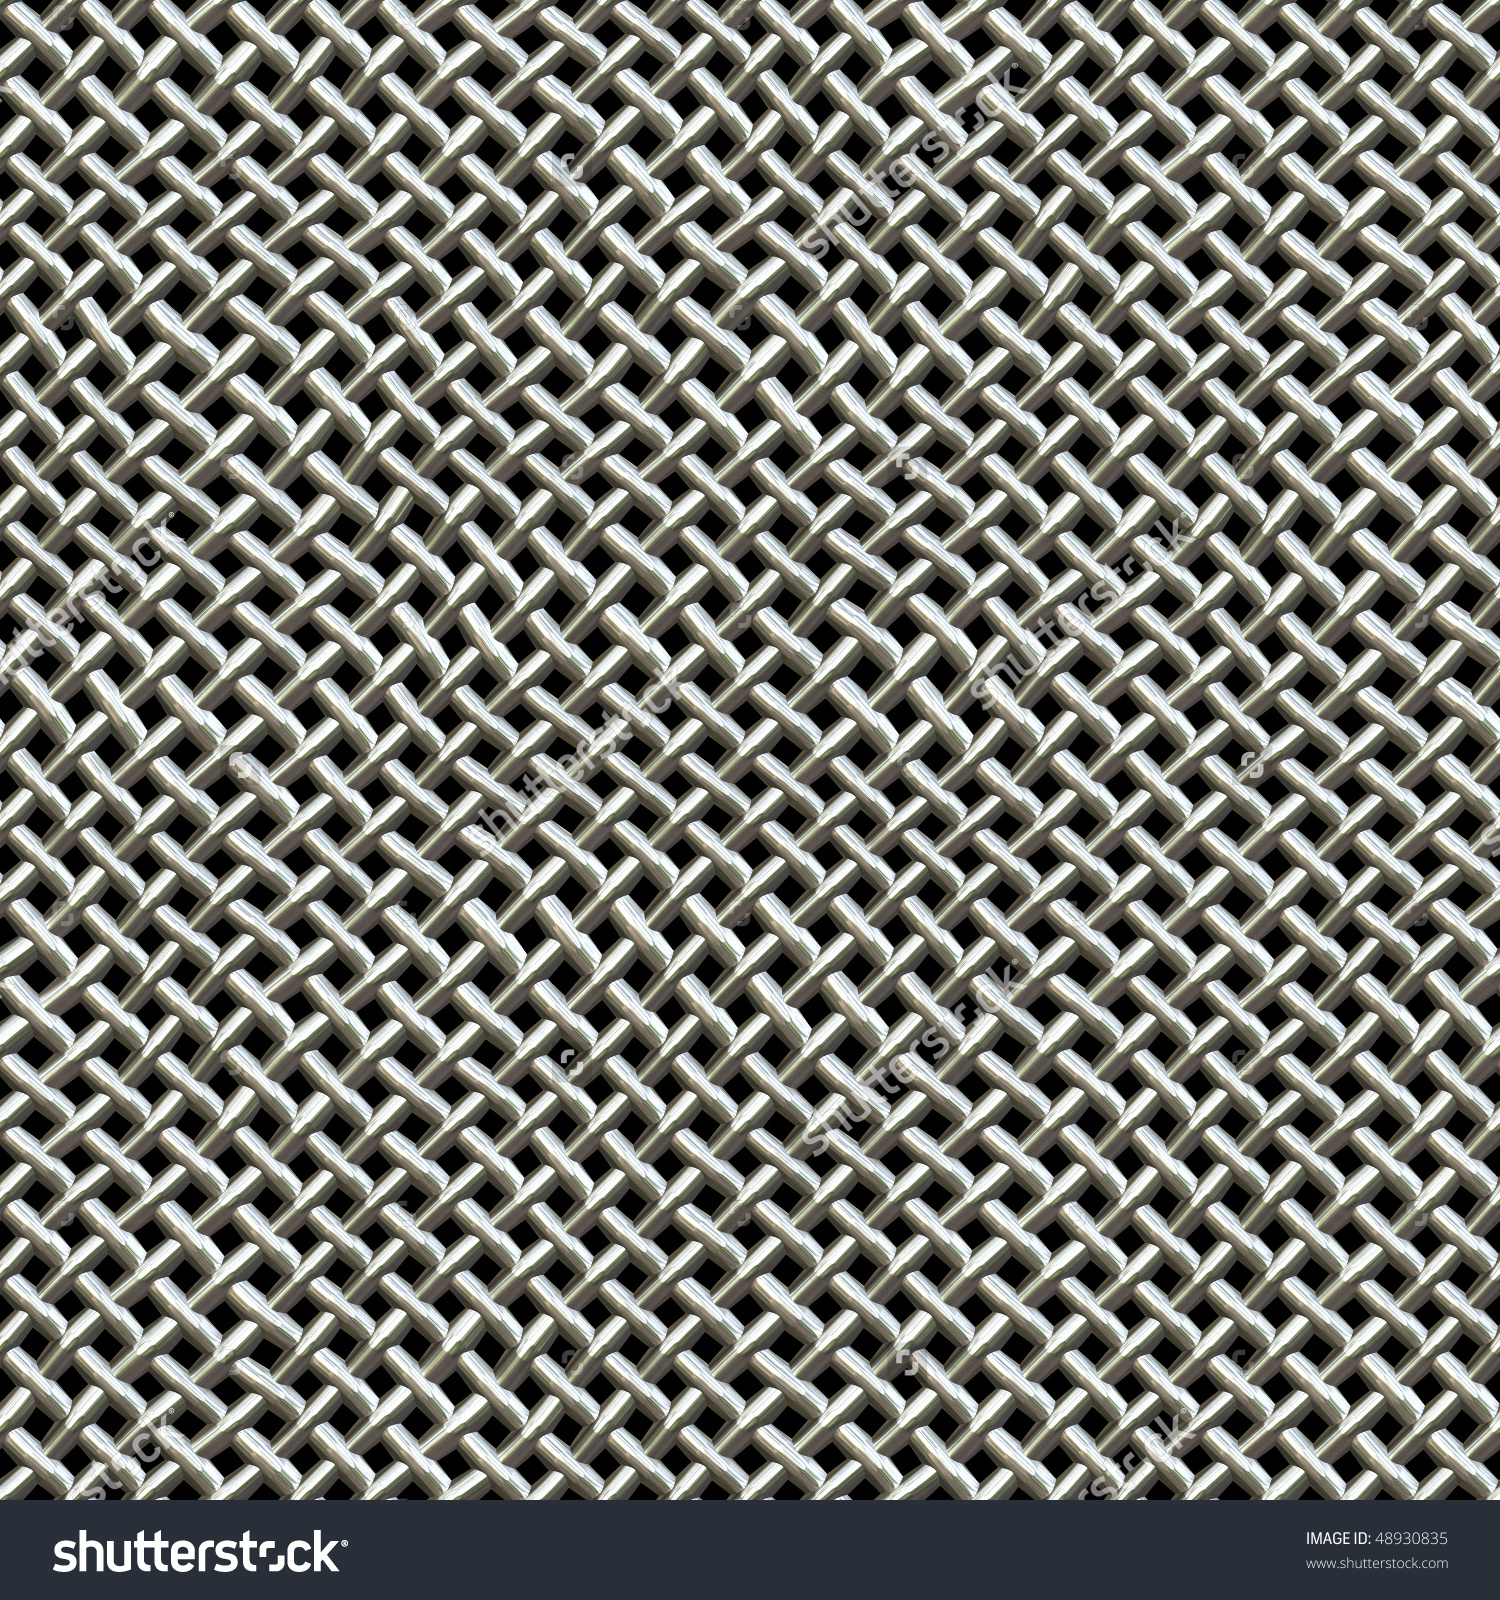 Silver Metal Wire Mesh Texture Found Stock Illustration 48930835.